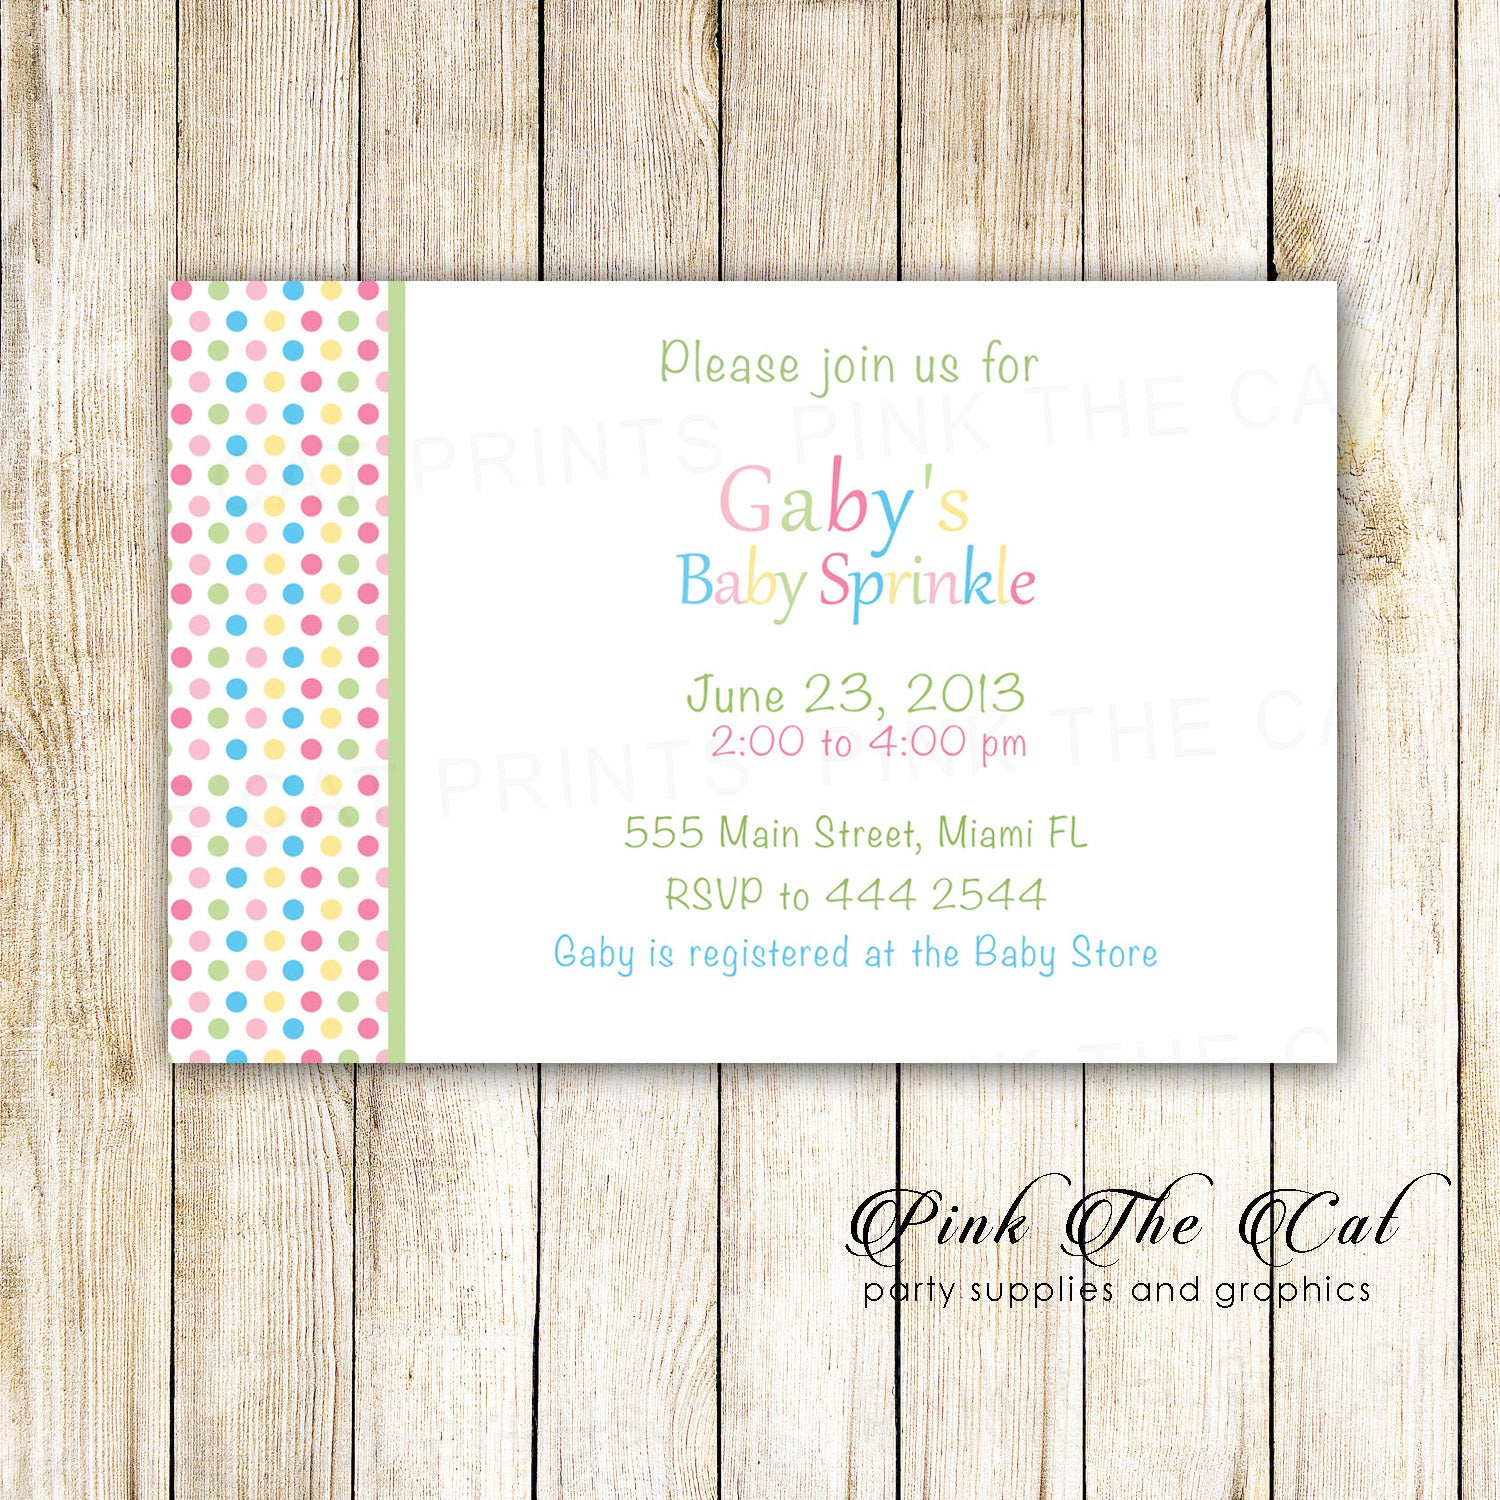 Baby sprinkle shower invitation pastel colors unisex printable baby sprinkle shower invitation pastel colors unisex printable filmwisefo